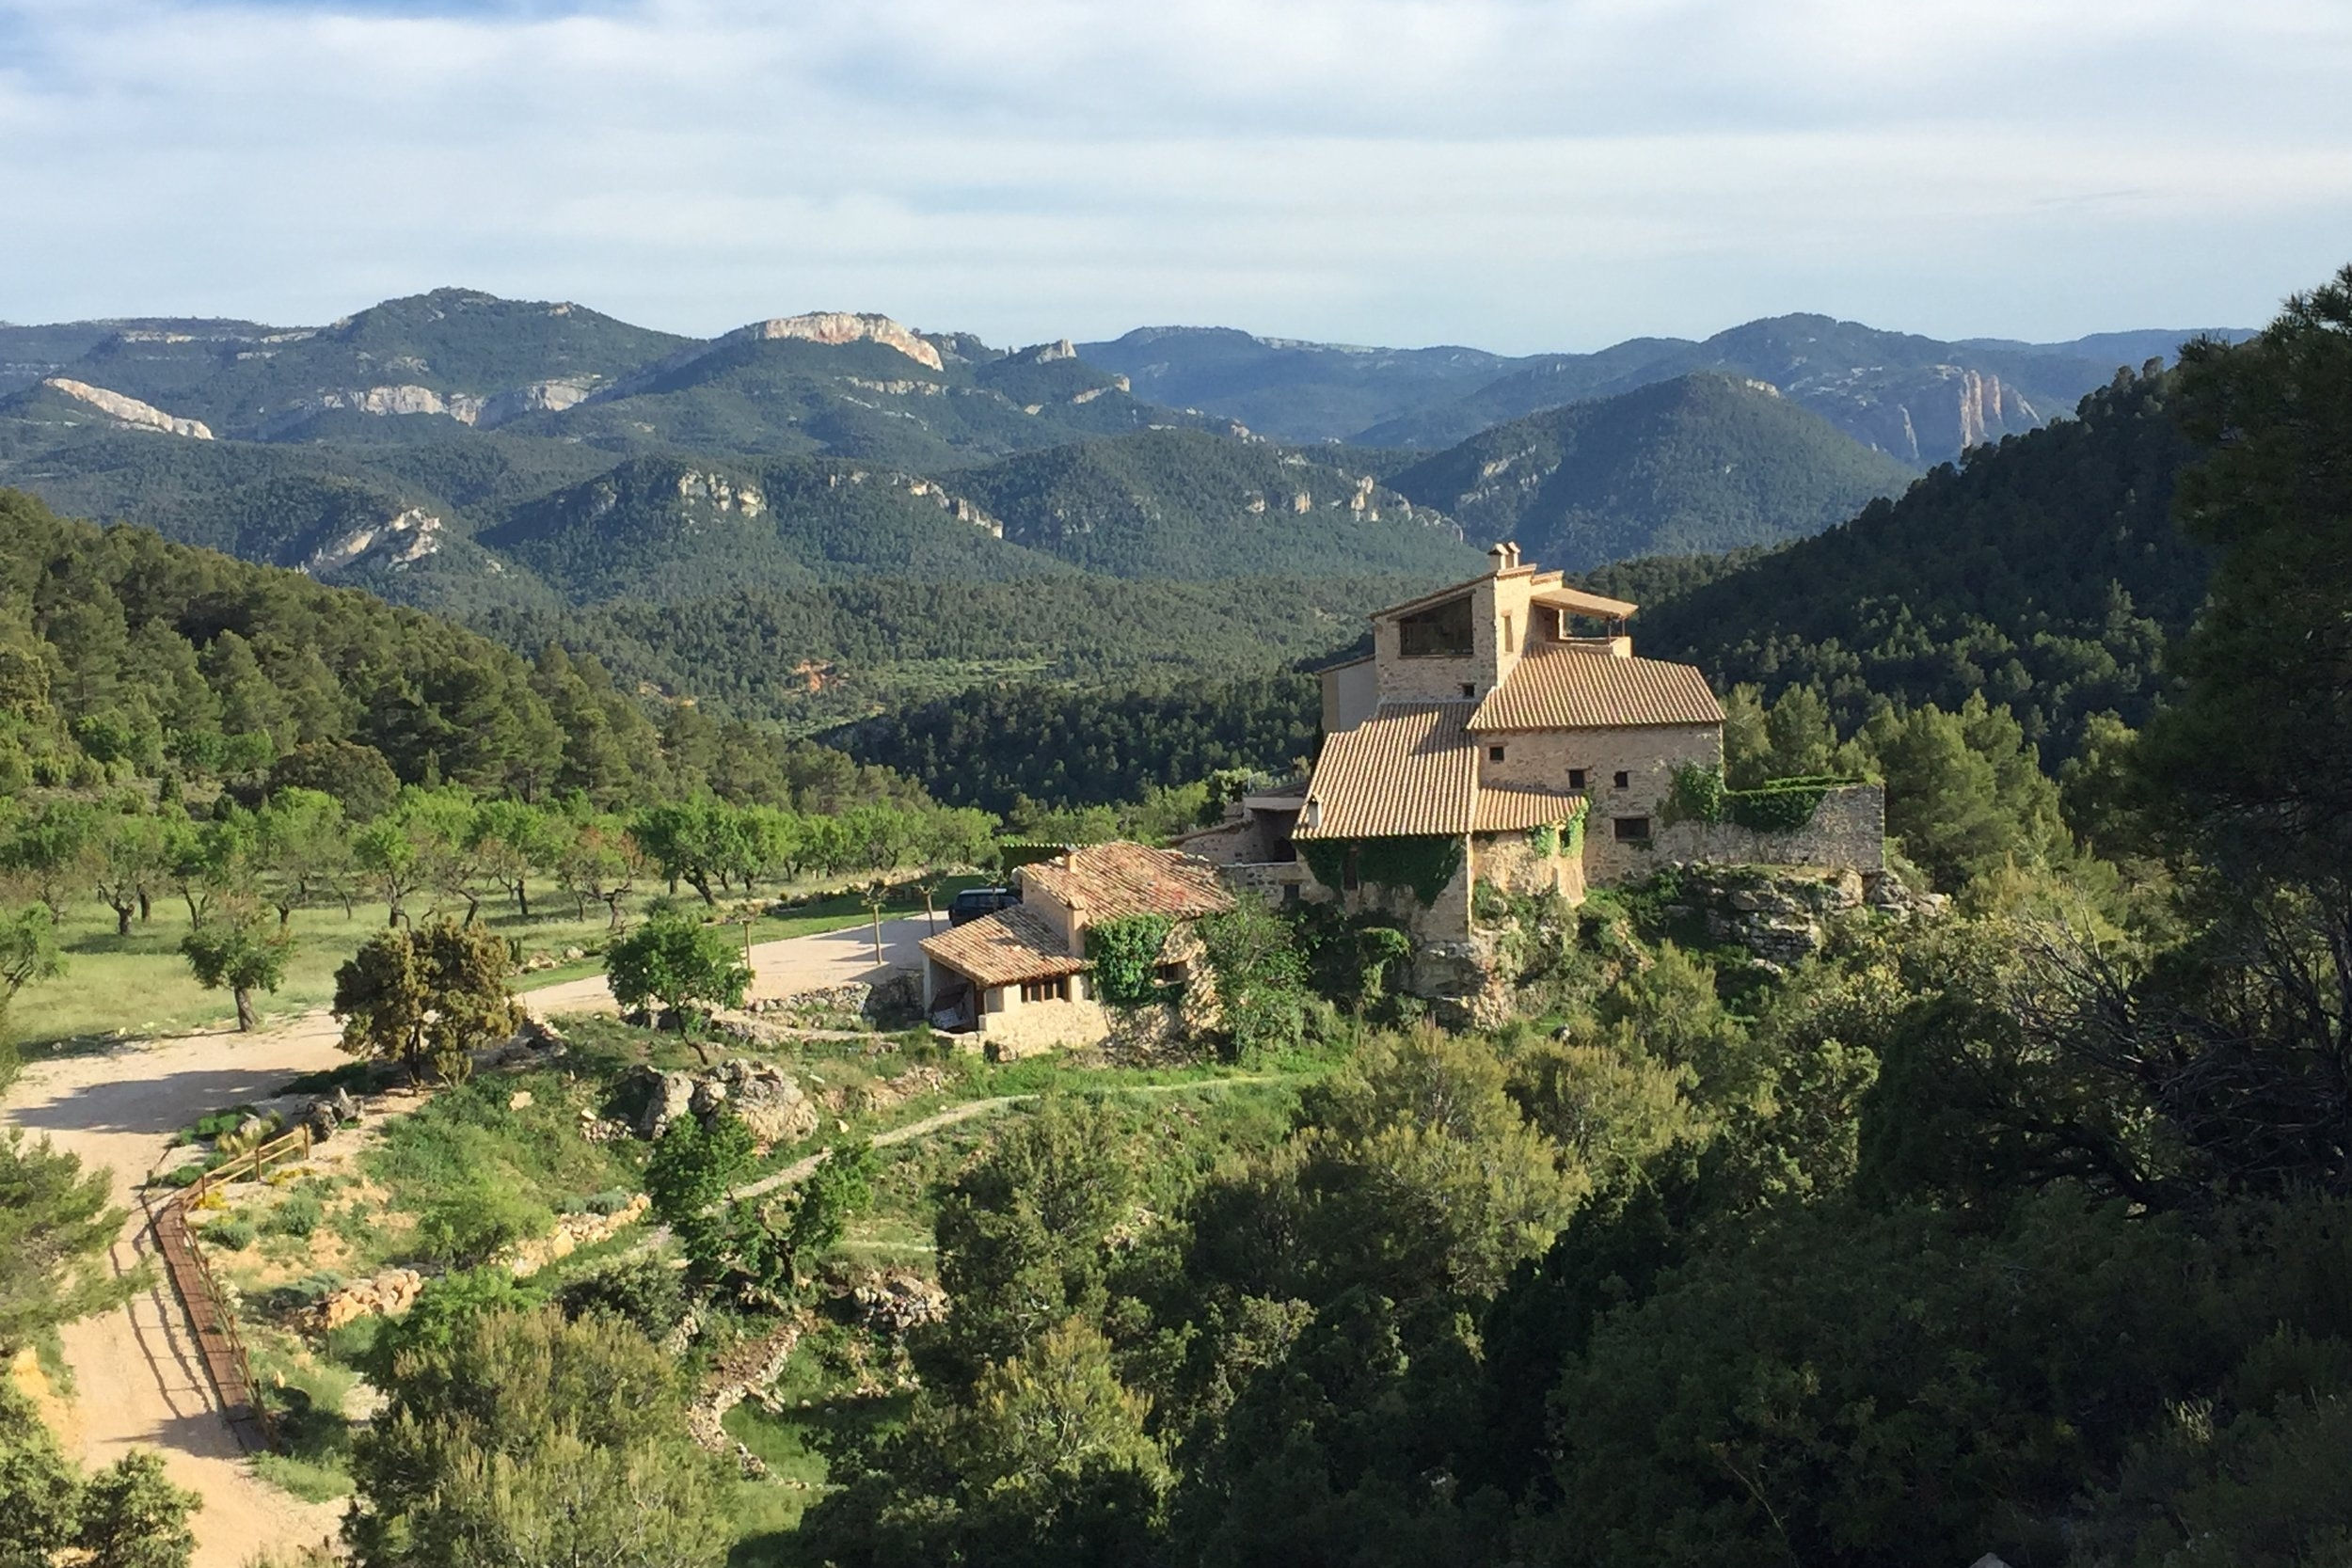 Spanish Wilderness Fitness & Yoga Retreat - 6 days of exercise and relaxation in the beautiful Spanish mountains. This beautiful boutique retreat is guaranteed to give your fitness a reboot whilst your mind unwinds.